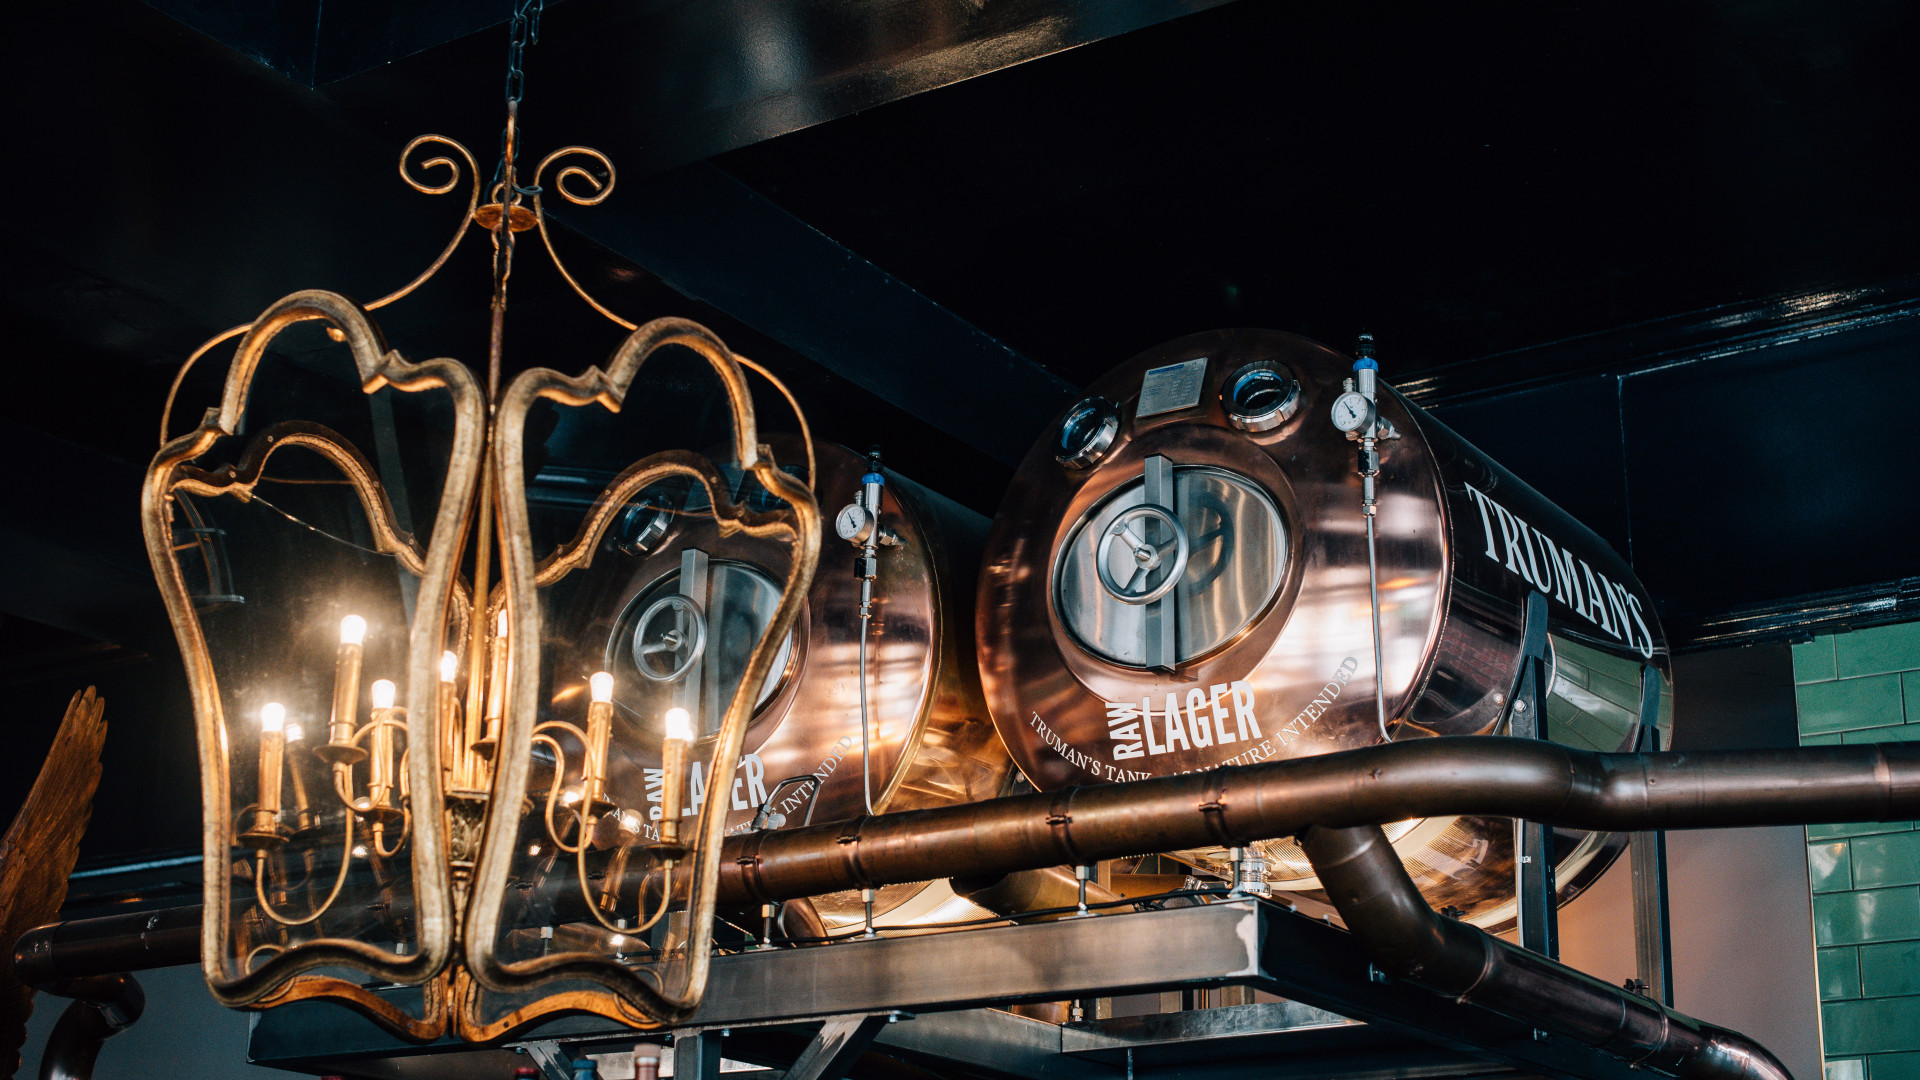 RAW lager tanks at The Eagle, Ladbroke Grove